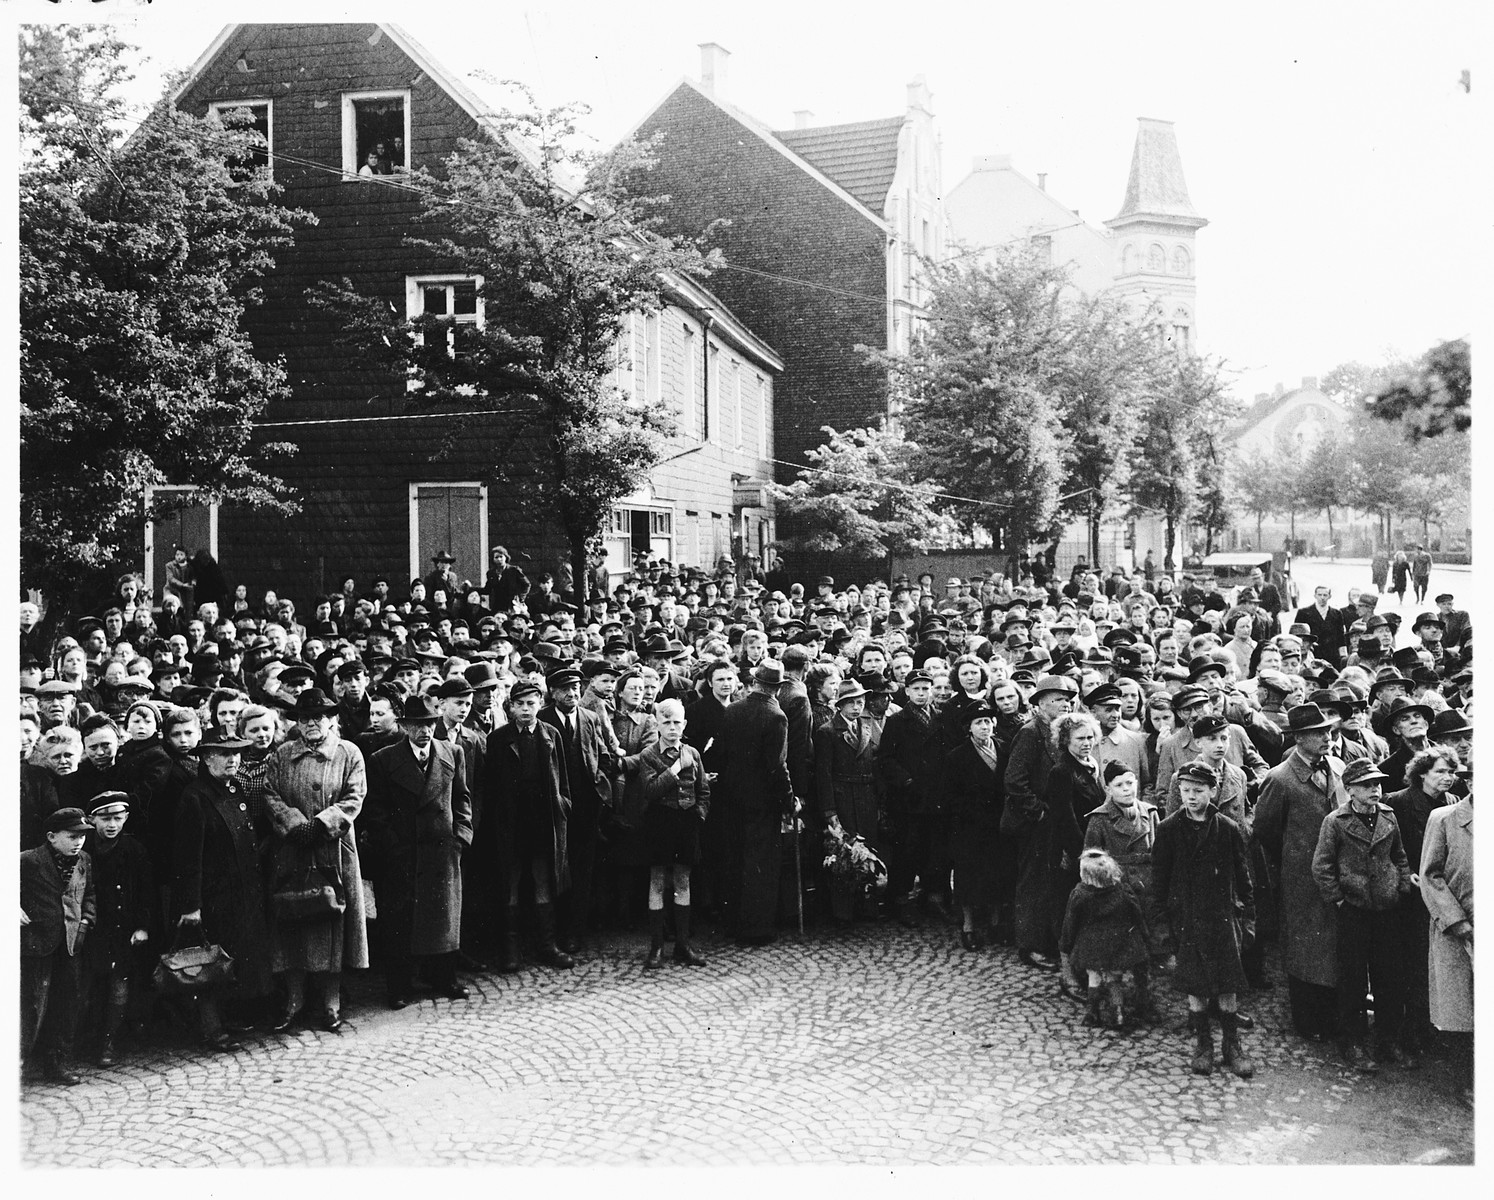 German civilians attend funeral services for the 71 political prisoners, exhumed from a mass grave near Solingen-Ohligs, reburied in front of the city hall.    The victims, most of whom were taken from Luettringhausen prison, were shot and buried by the Gestapo following orders to eliminate all Reich enemies just before the end of the war.